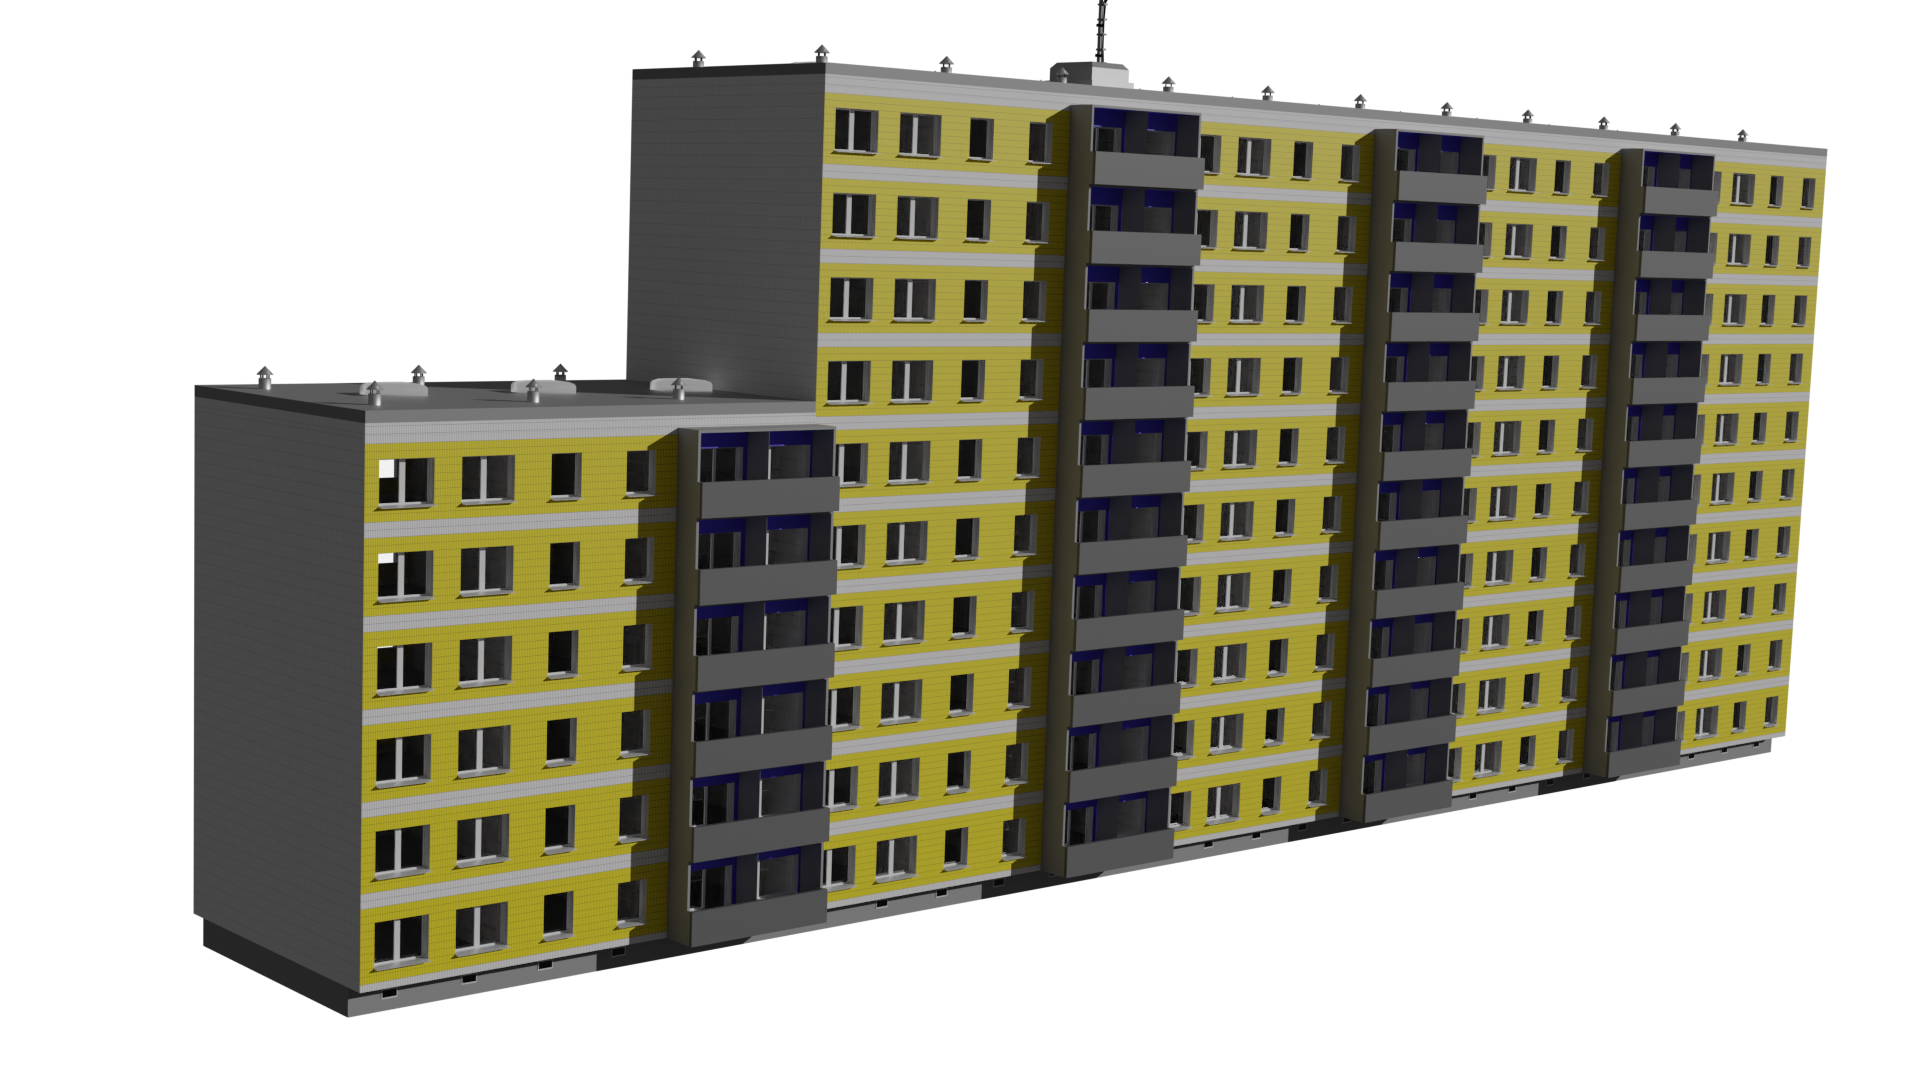 Modular Instustrialized Apartment Block (Low Poly) preview image 2